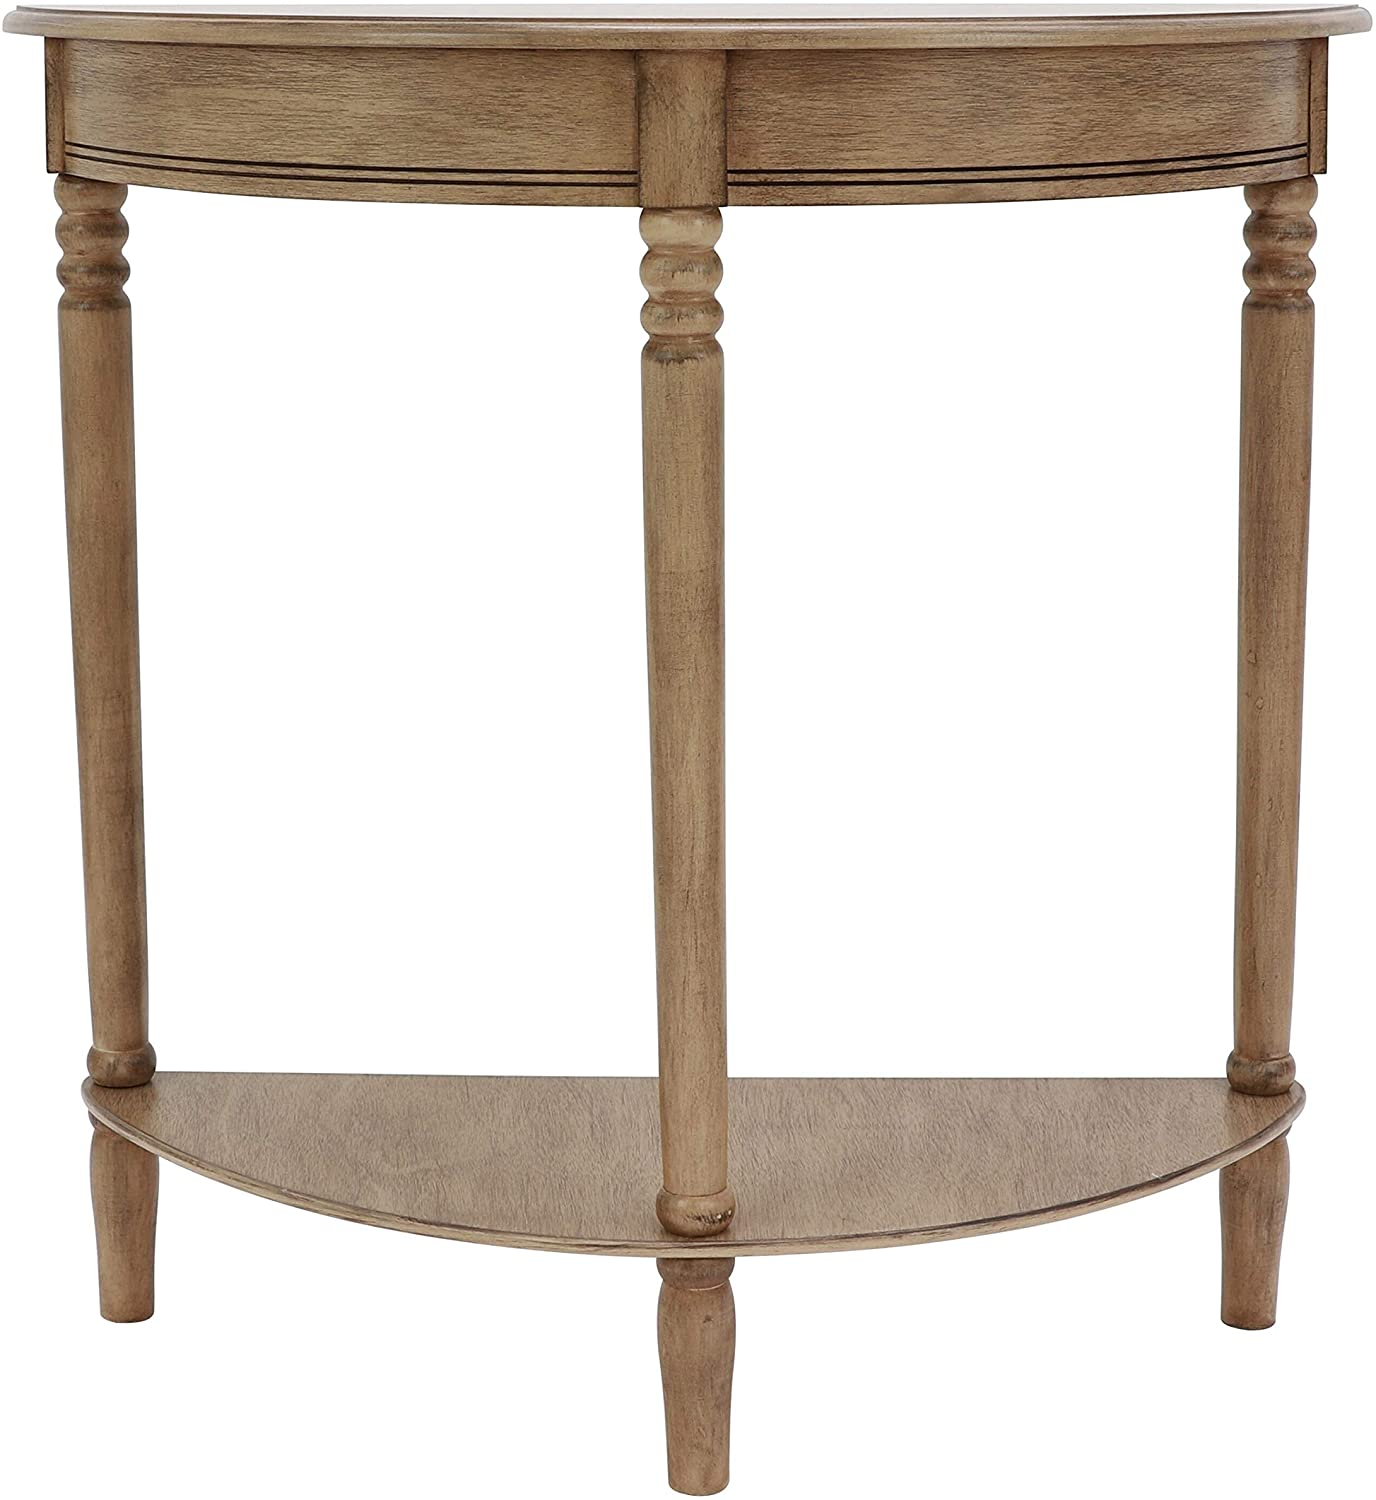 Decor Therapy Simplify Half Round Accent table, Sahara